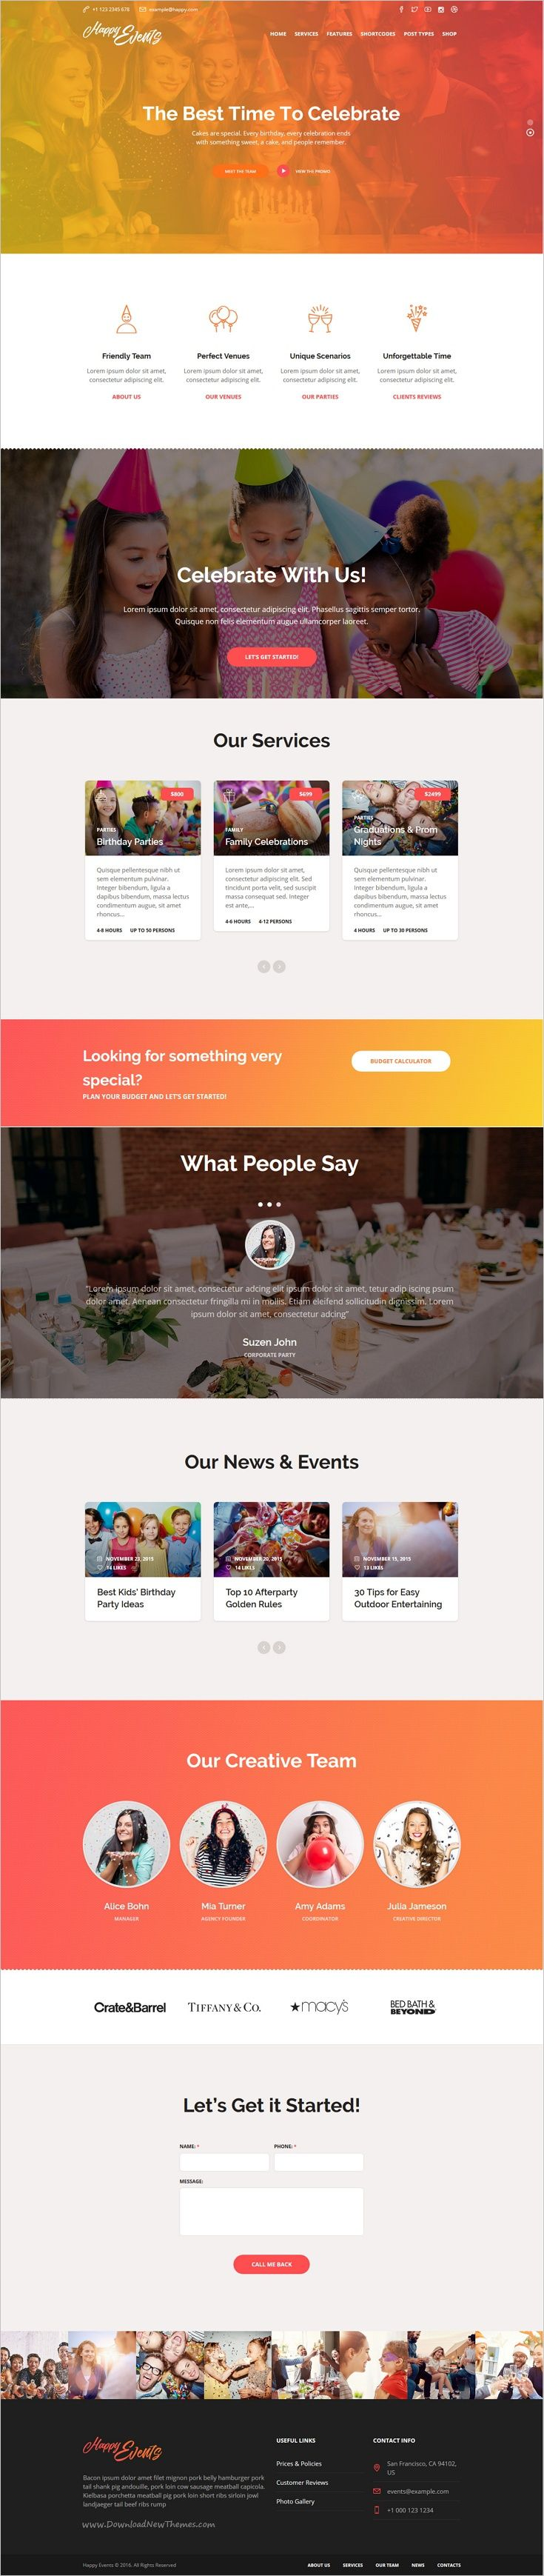 Happy Events is a fascinating #events responsive #WordPress theme for #webdev events #agency website, that can work as an events planner to manage holidays, special events and celebrations download now➩ https://themeforest.net/item/happy-events-holiday-event-agency-planner-events-wordpress-theme/18939852?ref=Datasata